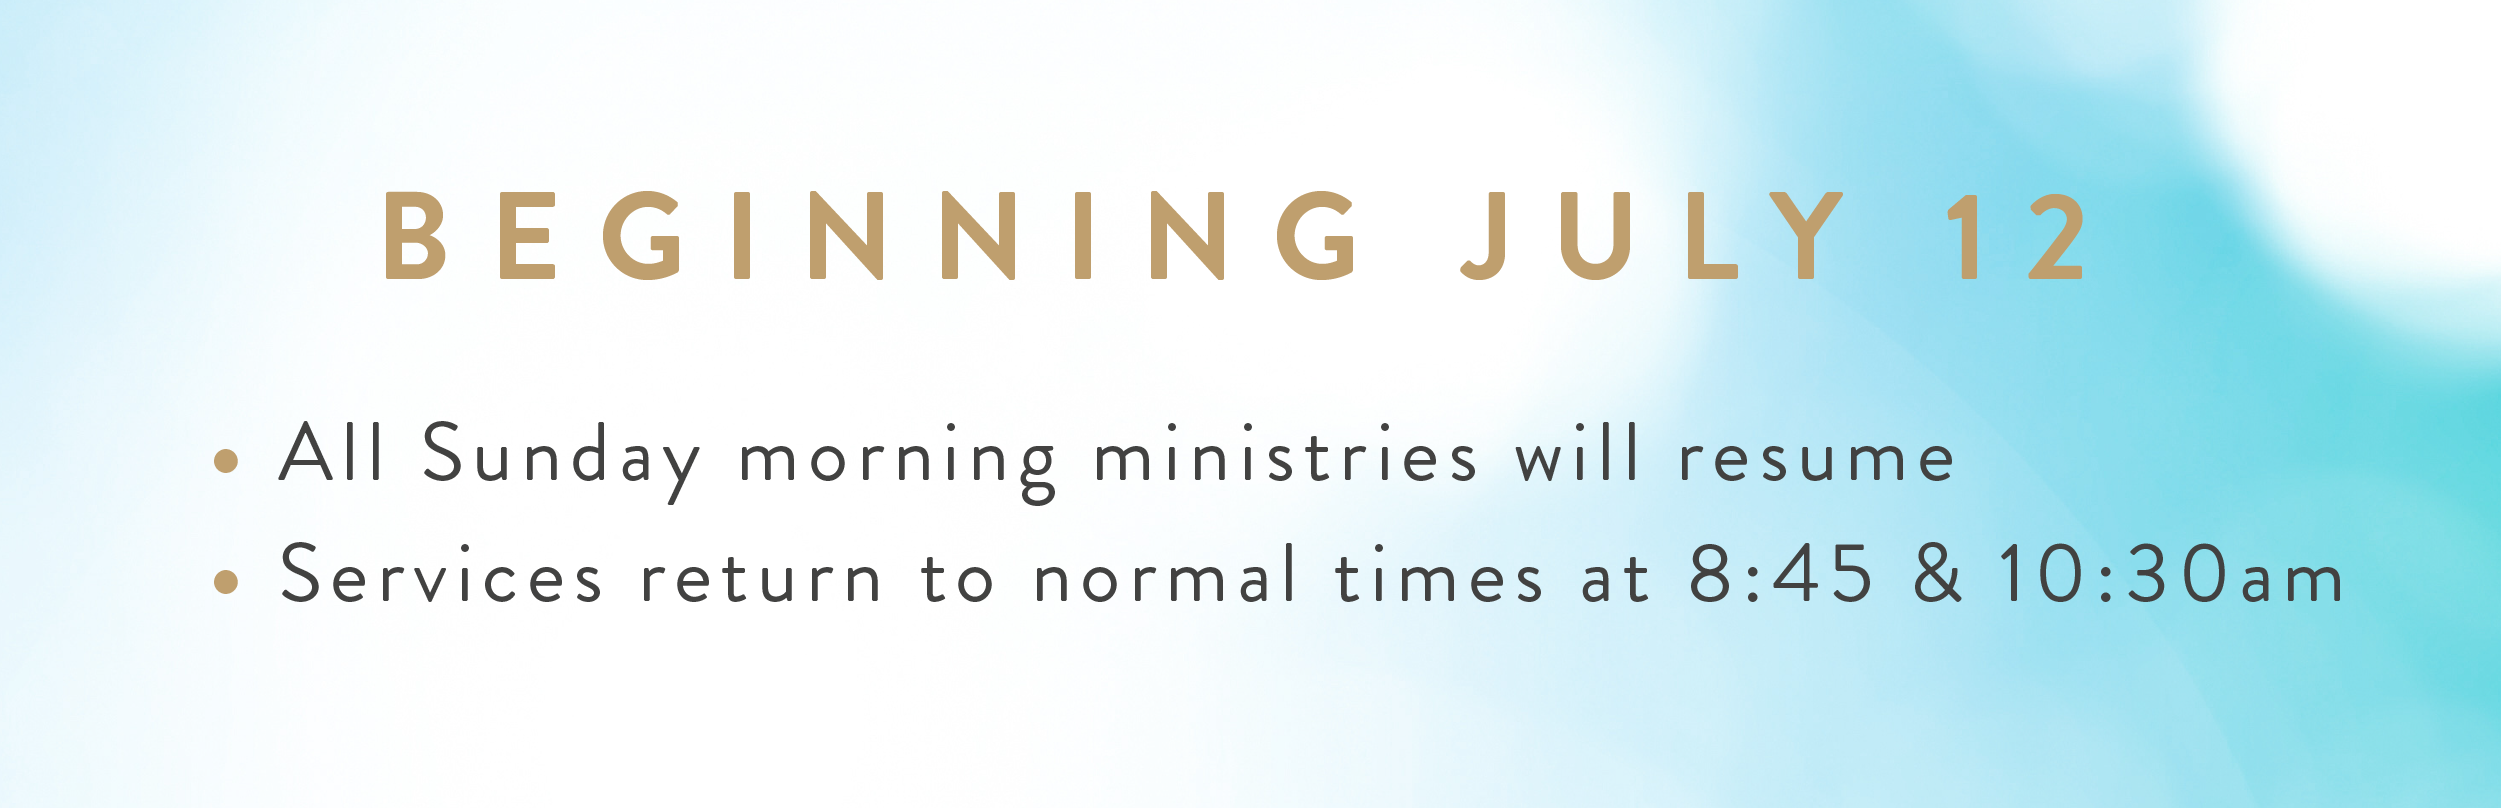 6-30-20 Ministry Opening Update for Web-39